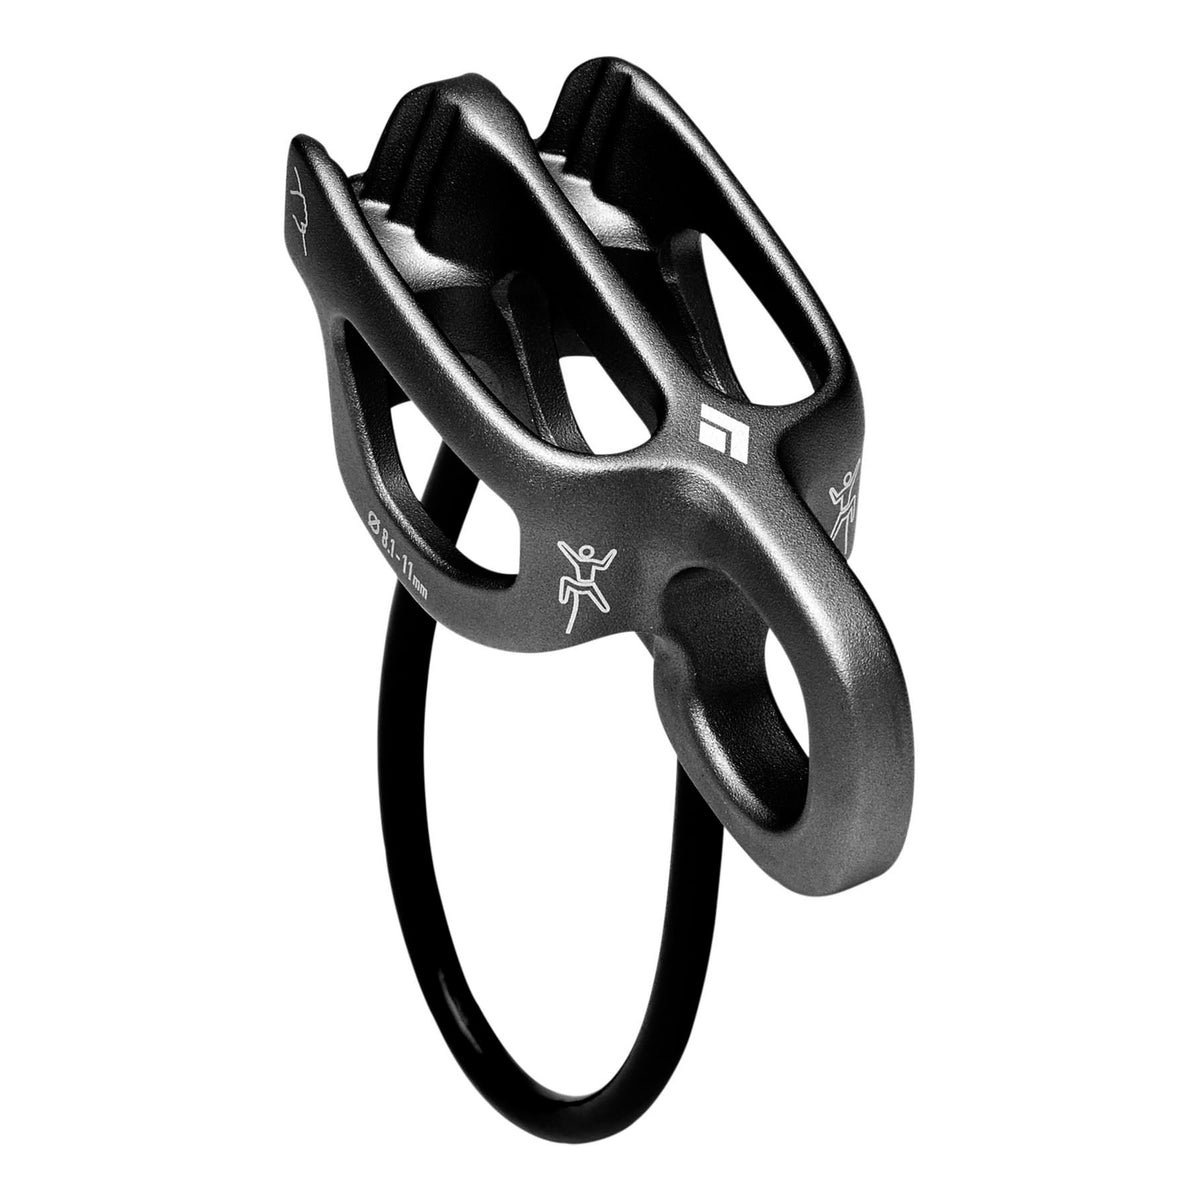 Black Diamond ATC Guide belay device, in gun metal grey colour